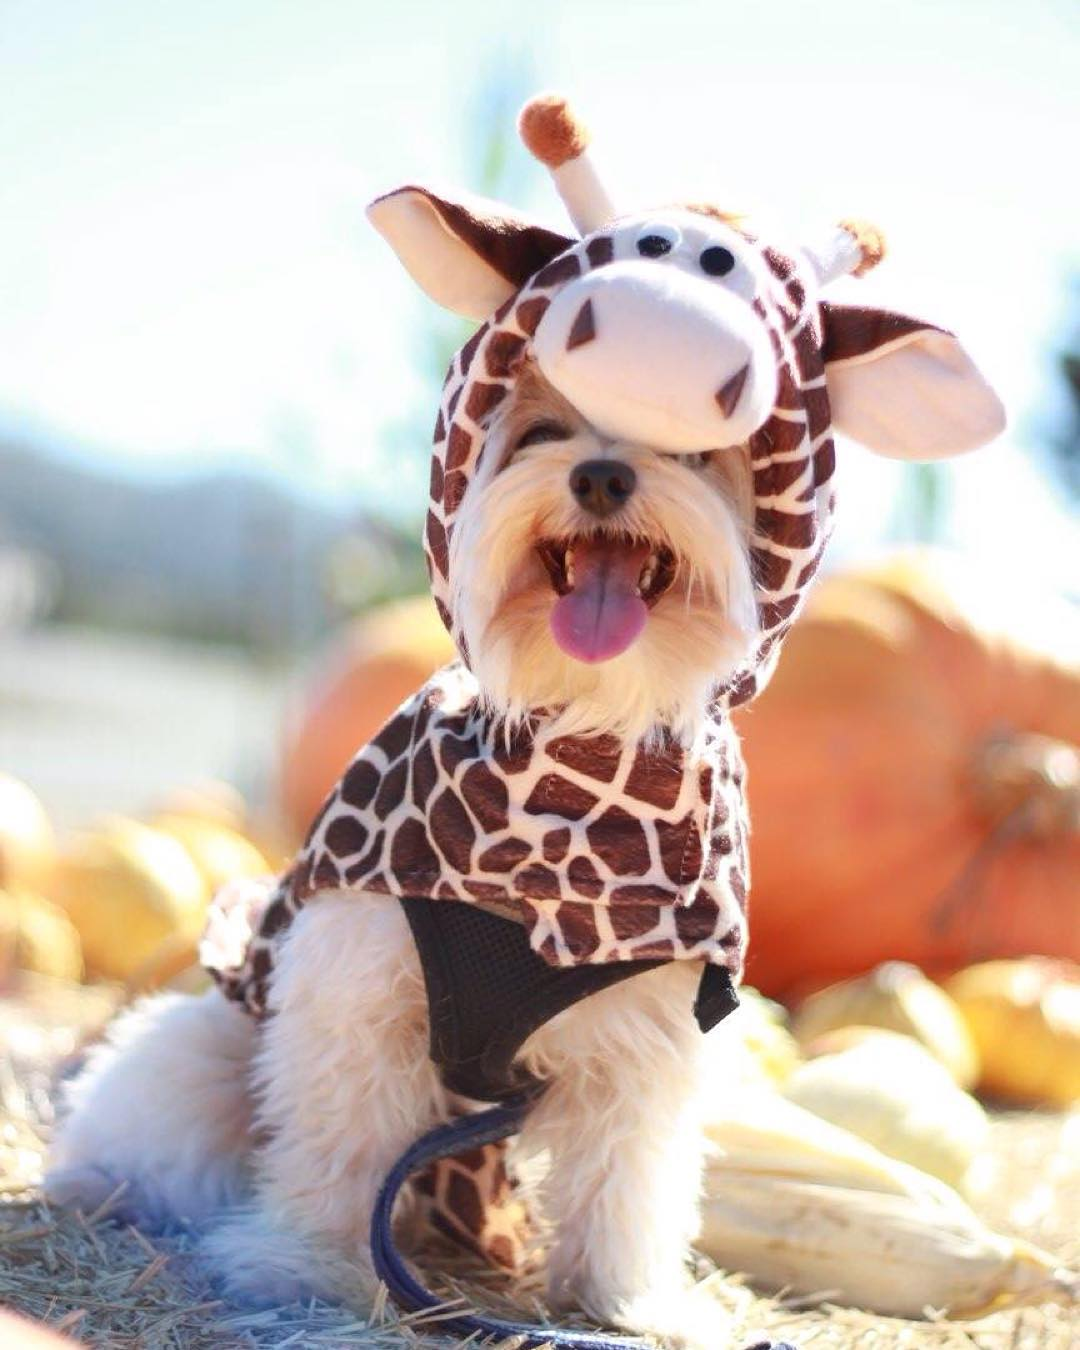 "<div class=""meta image-caption""><div class=""origin-logo origin-image none""><span>none</span></div><span class=""caption-text"">This is the cutest corgi in a giraffe costume that we've ever seen! Share your photos by tagging them on social media with #SpookyOn7! (Photo submitted to KGO-TV by corgikikko_hunter/Instagram)</span></div>"